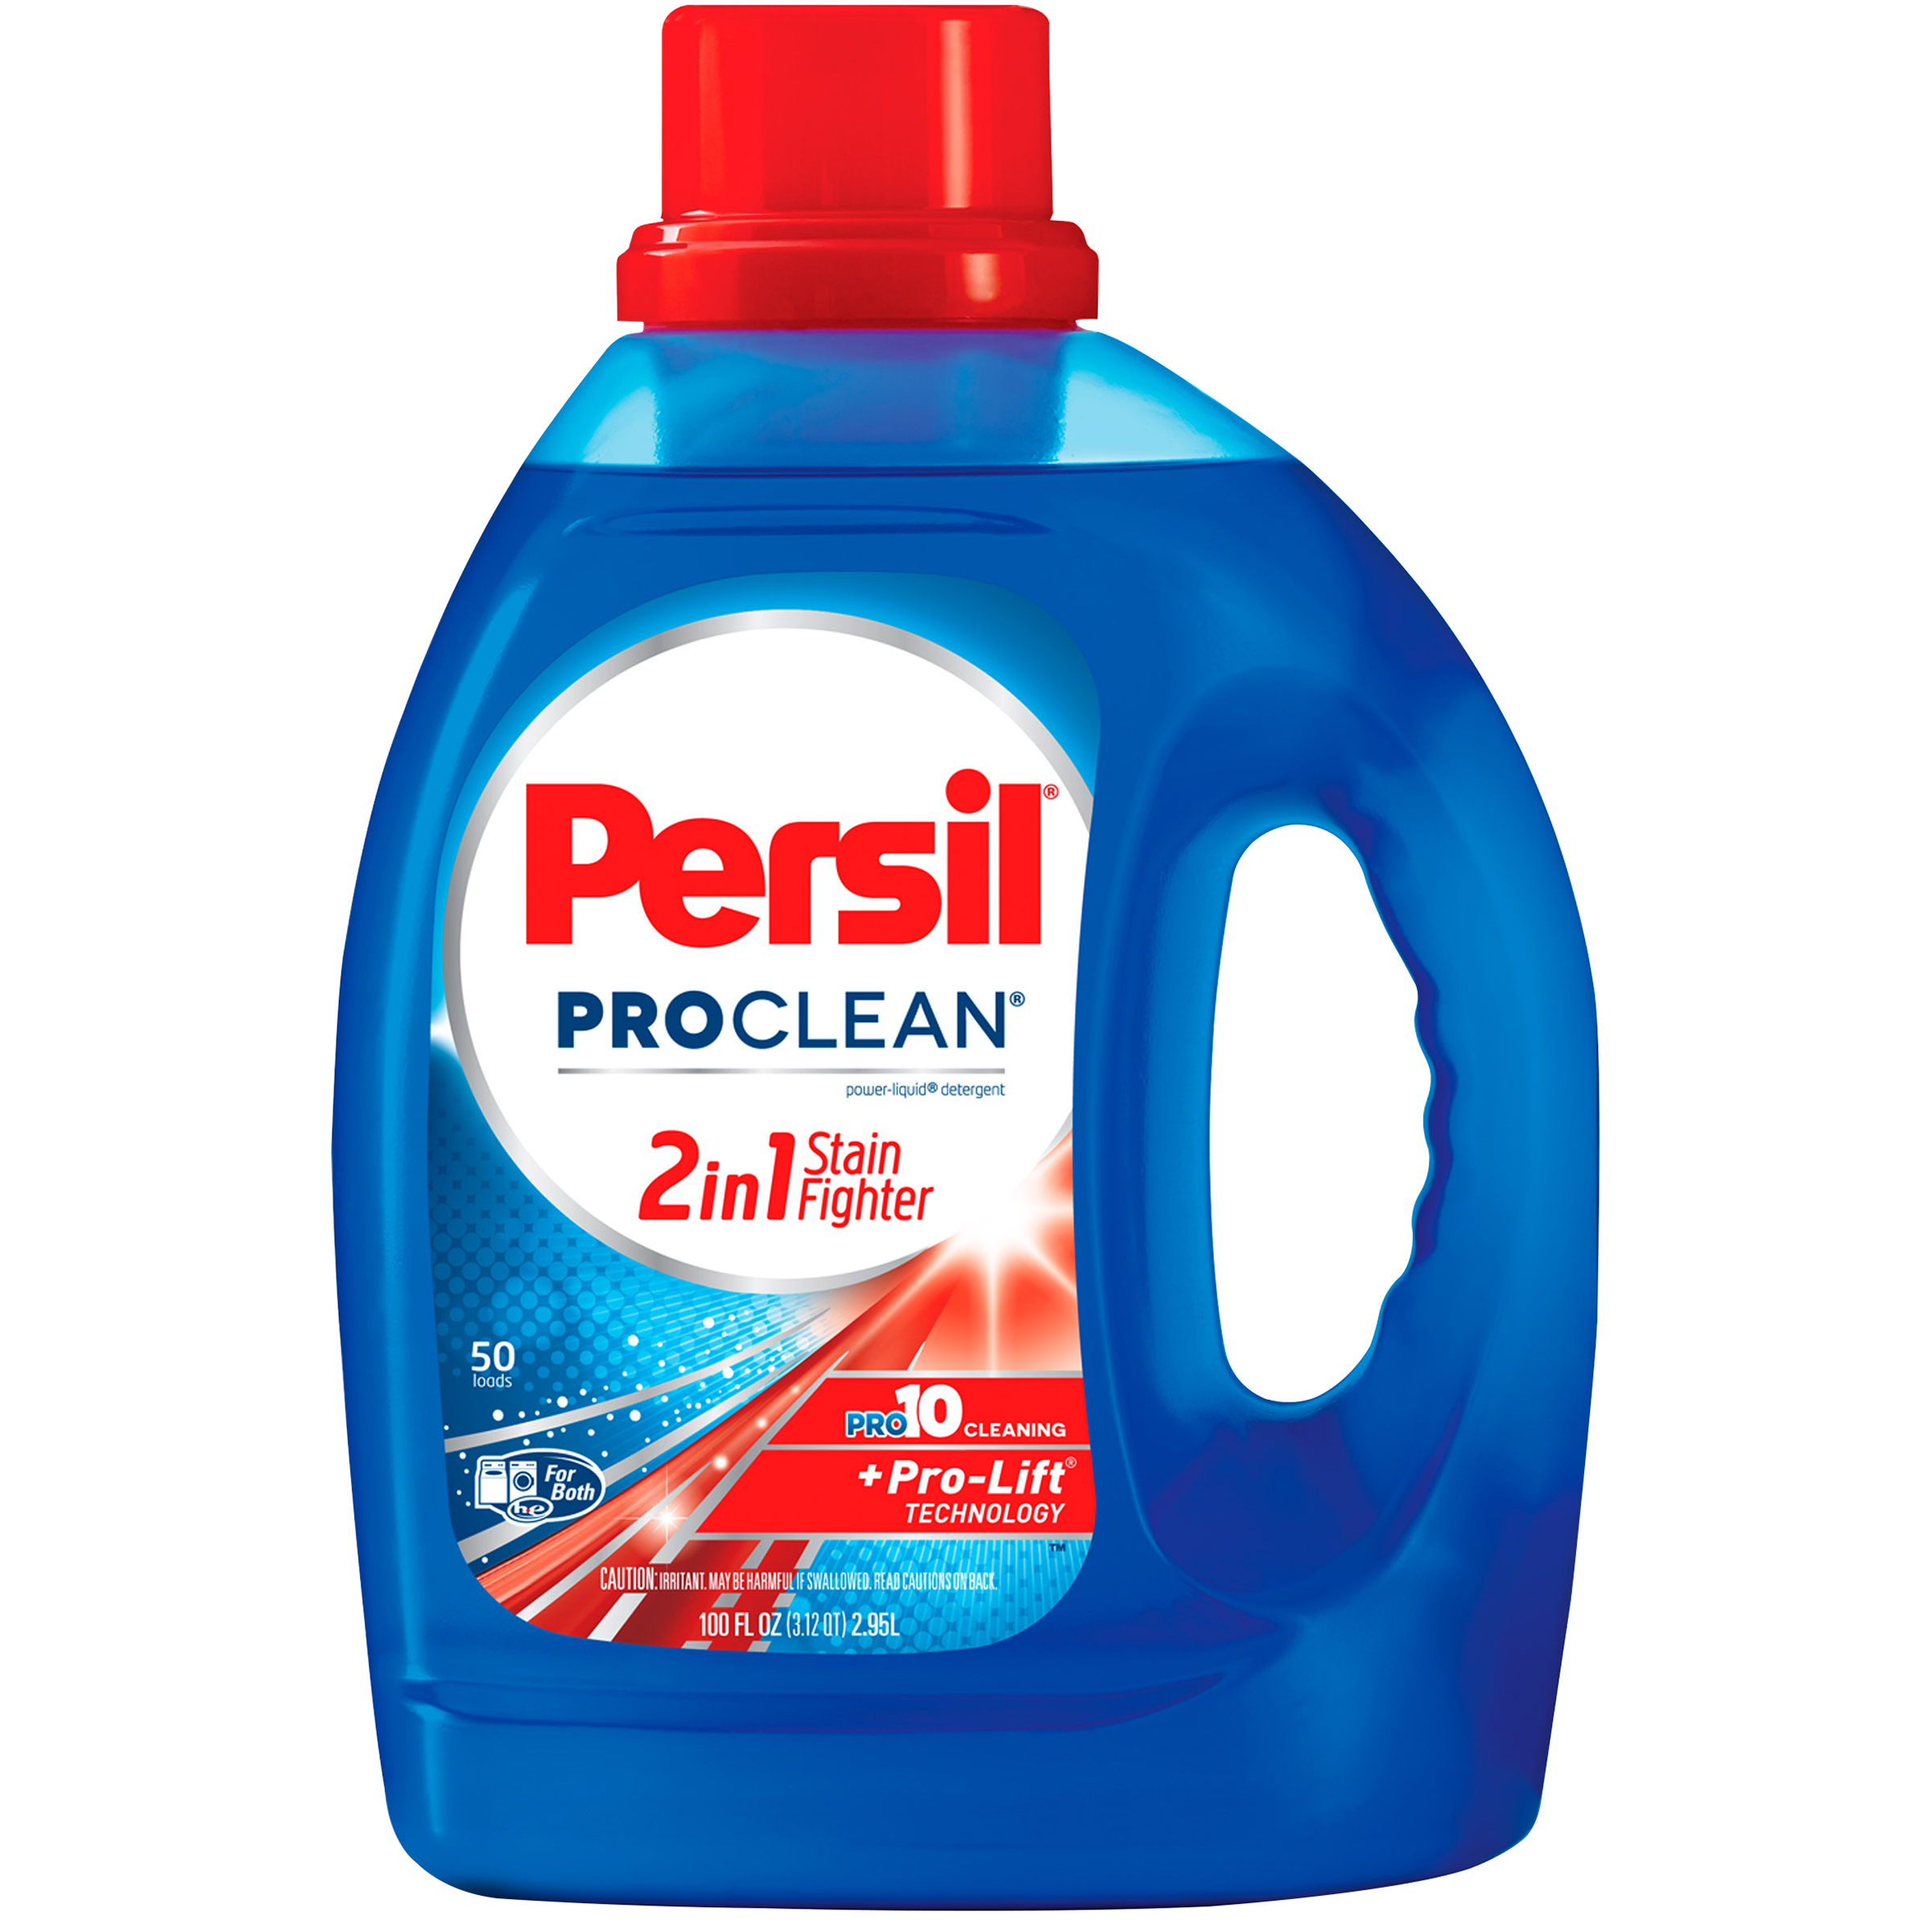 Persil ProClean 2in1 StainFighter Liquid Laundry Detergent, 100 Fluid Ounces, 50 Loads